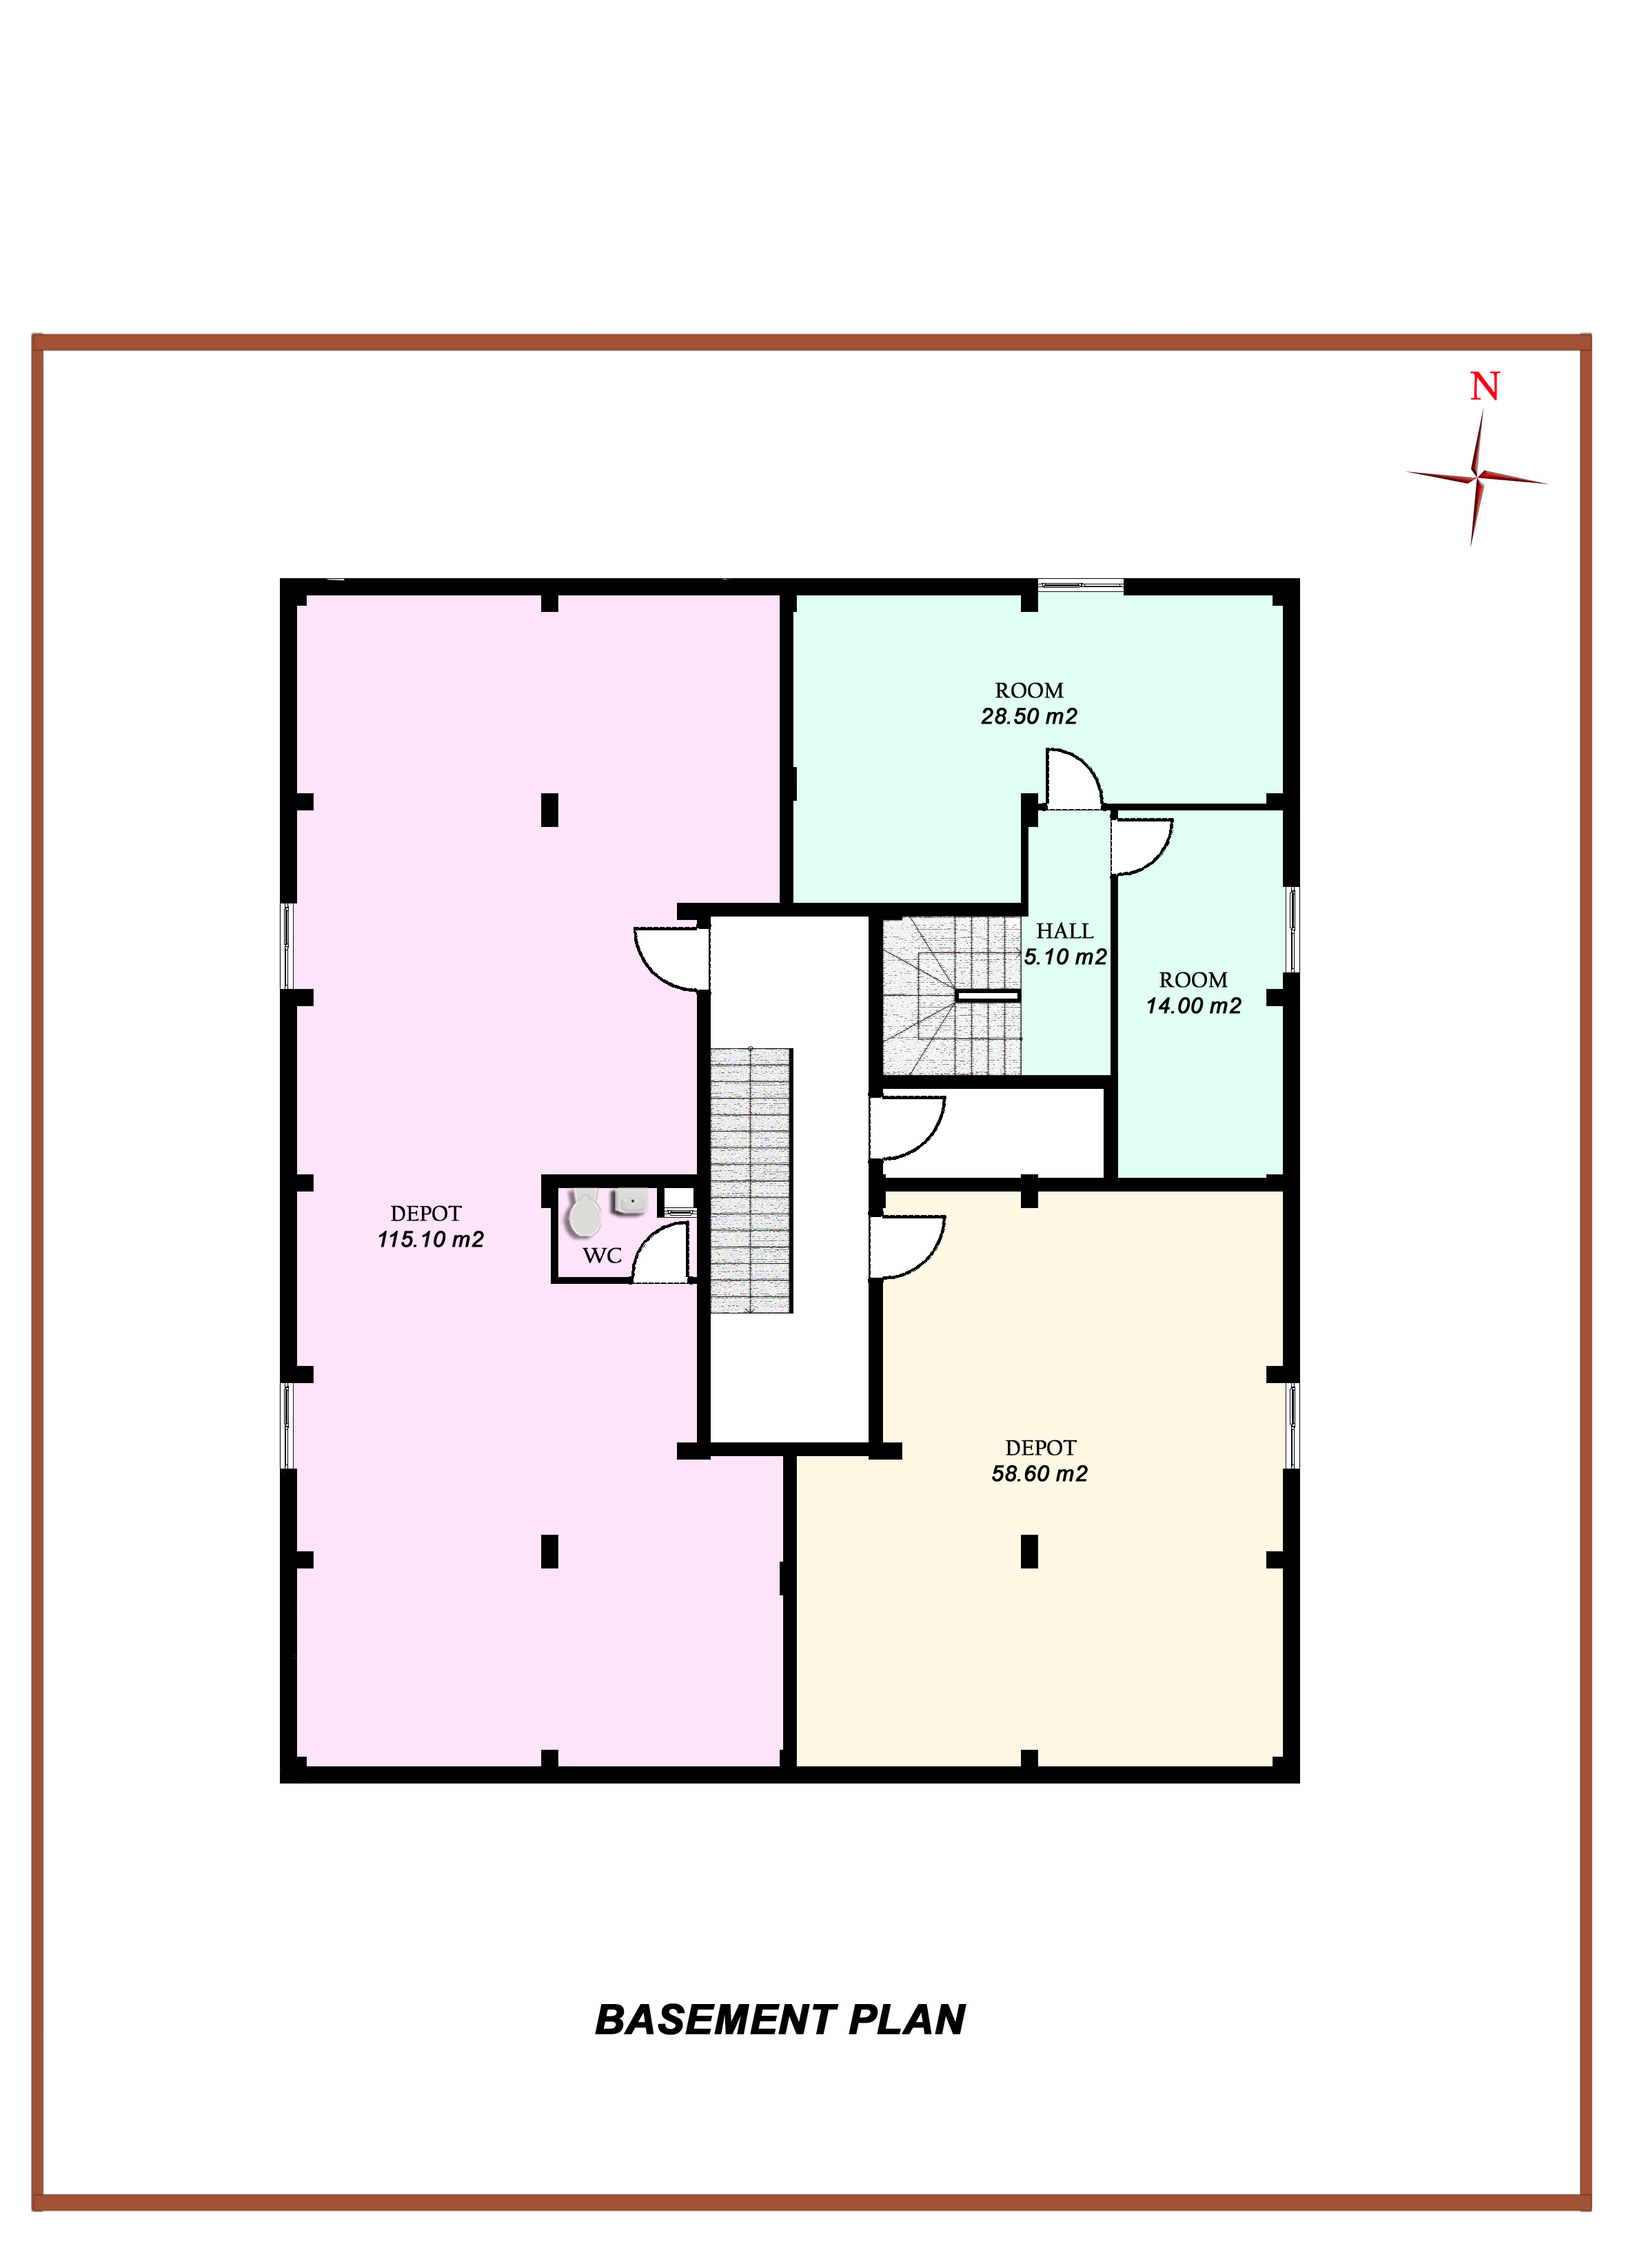 basement plans ideas photo - 6